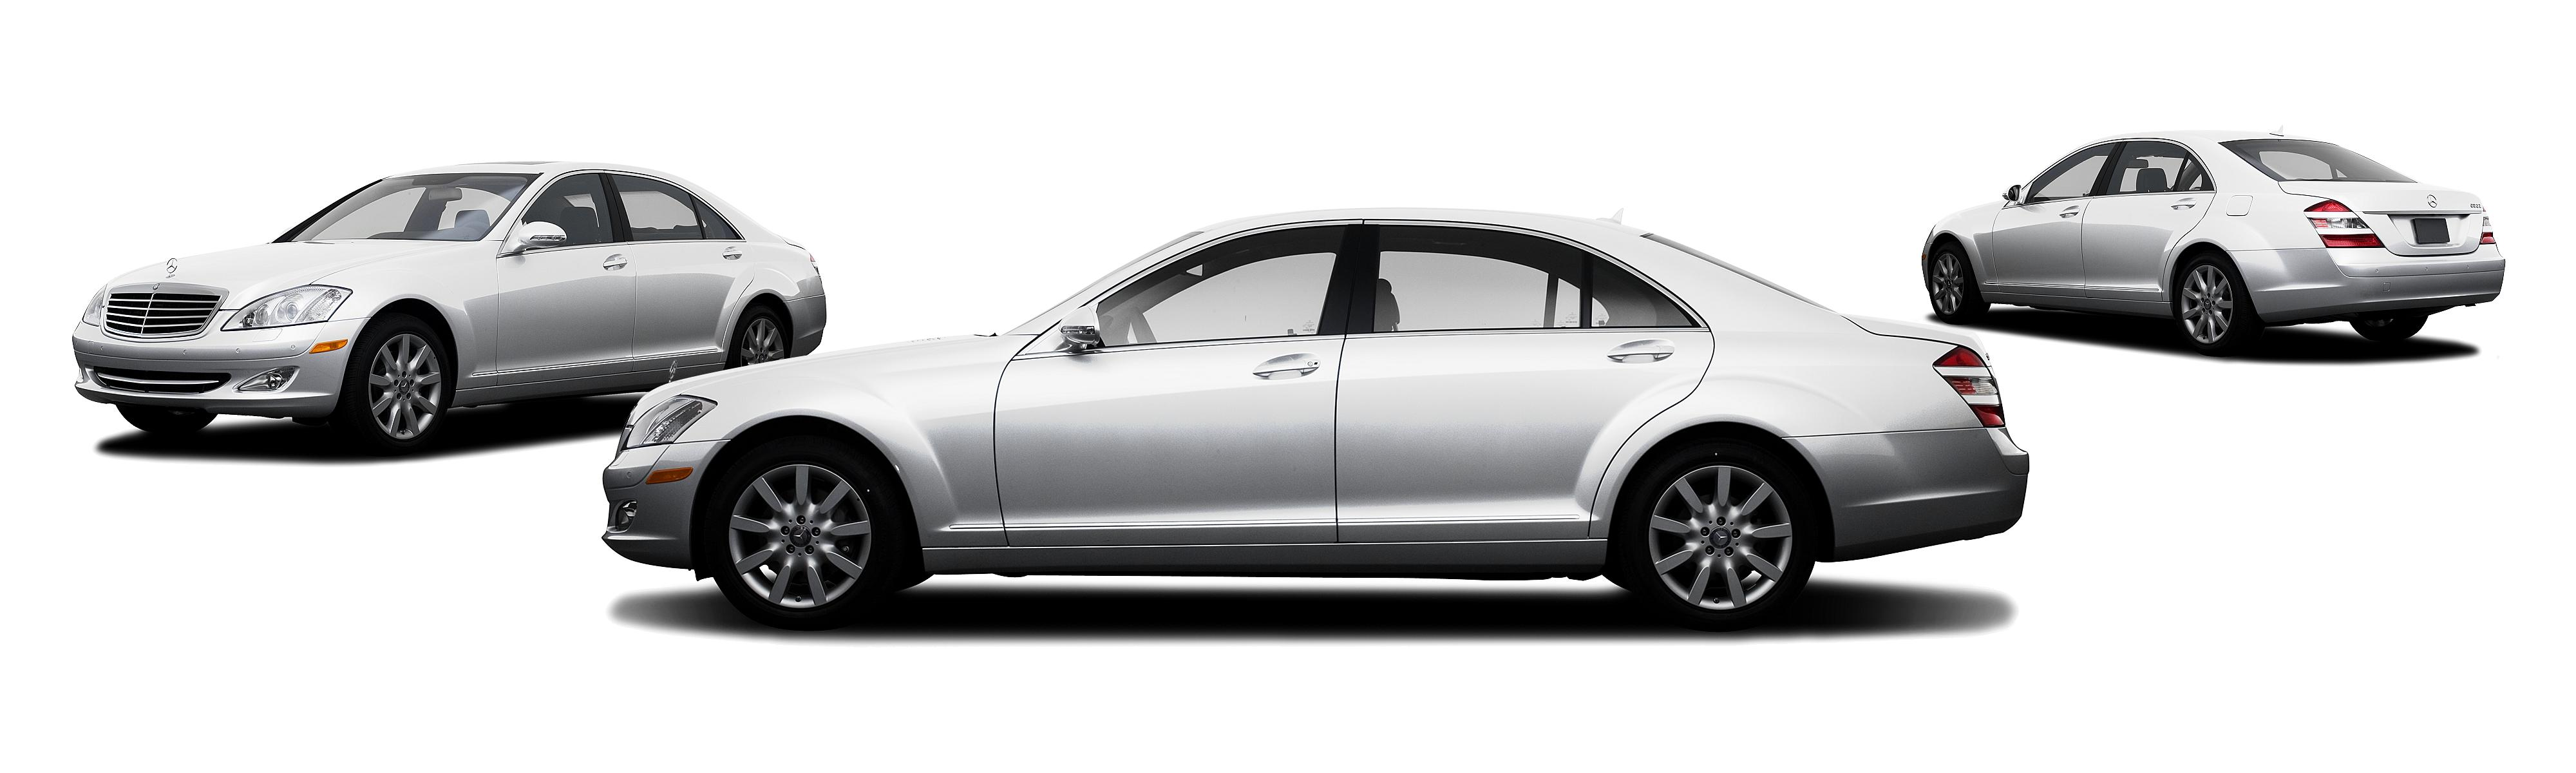 2008 Mercedes Benz S Class S 65 AMG 4dr Sedan Research GrooveCar